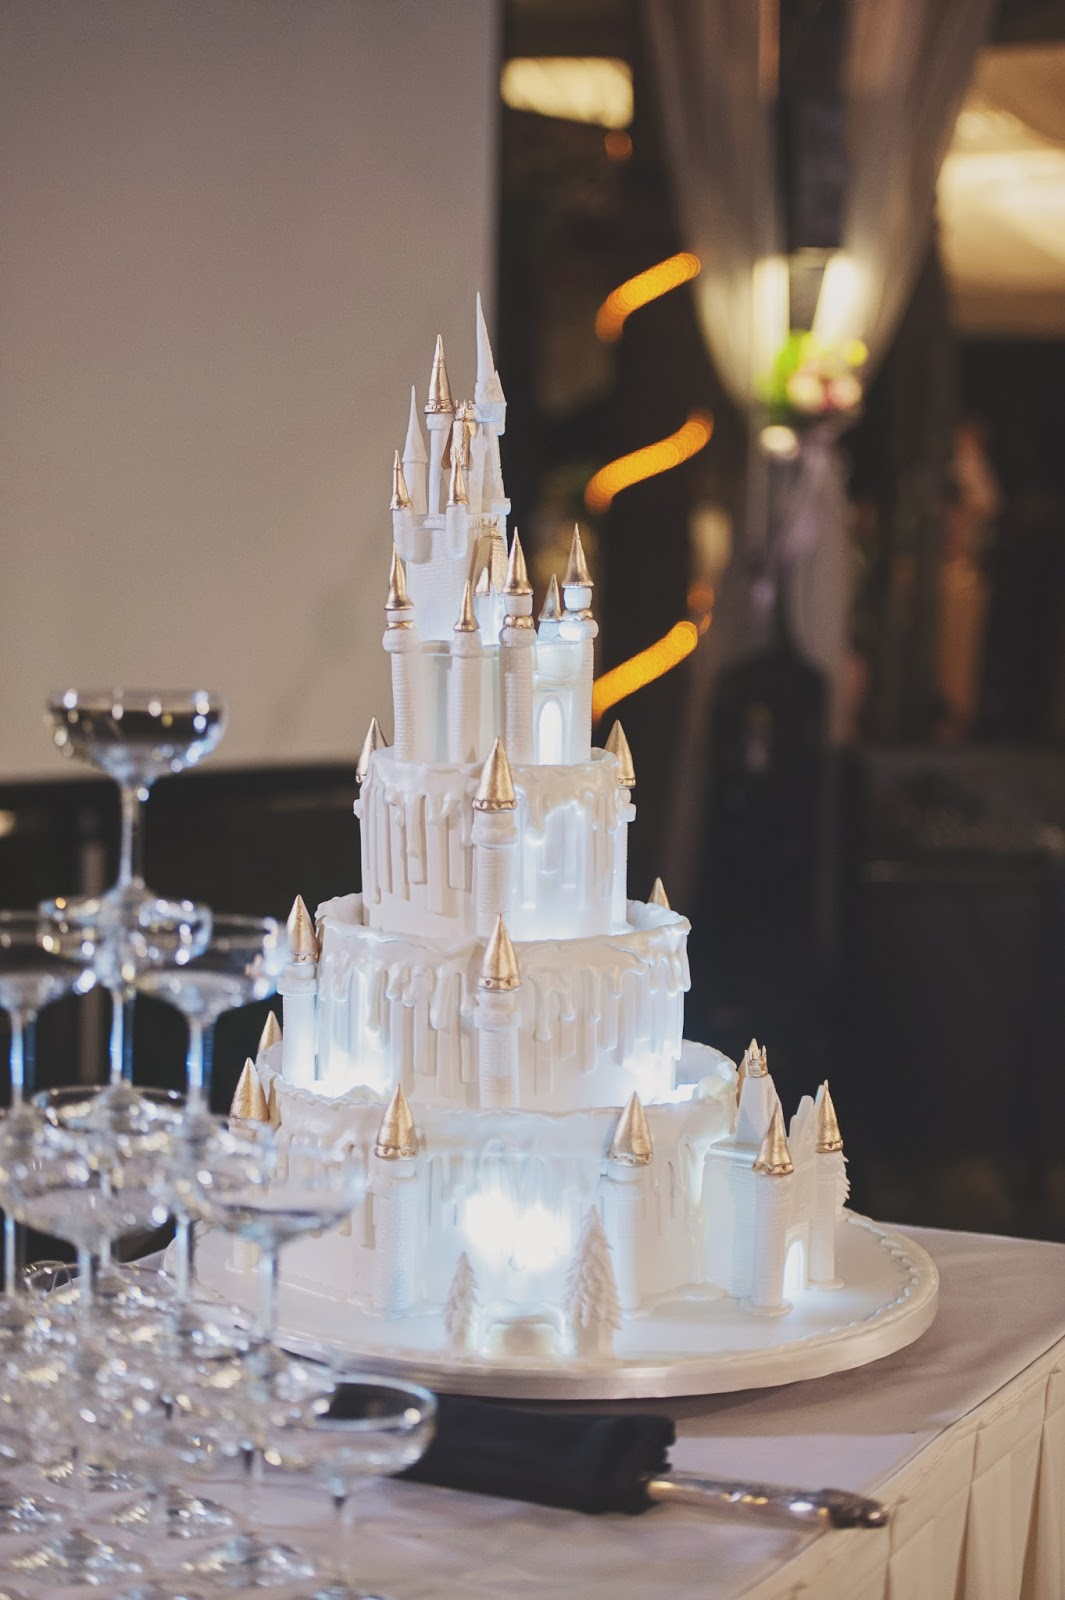 Disney Themed Cakes Will Bring Some Magic To Your Wedding